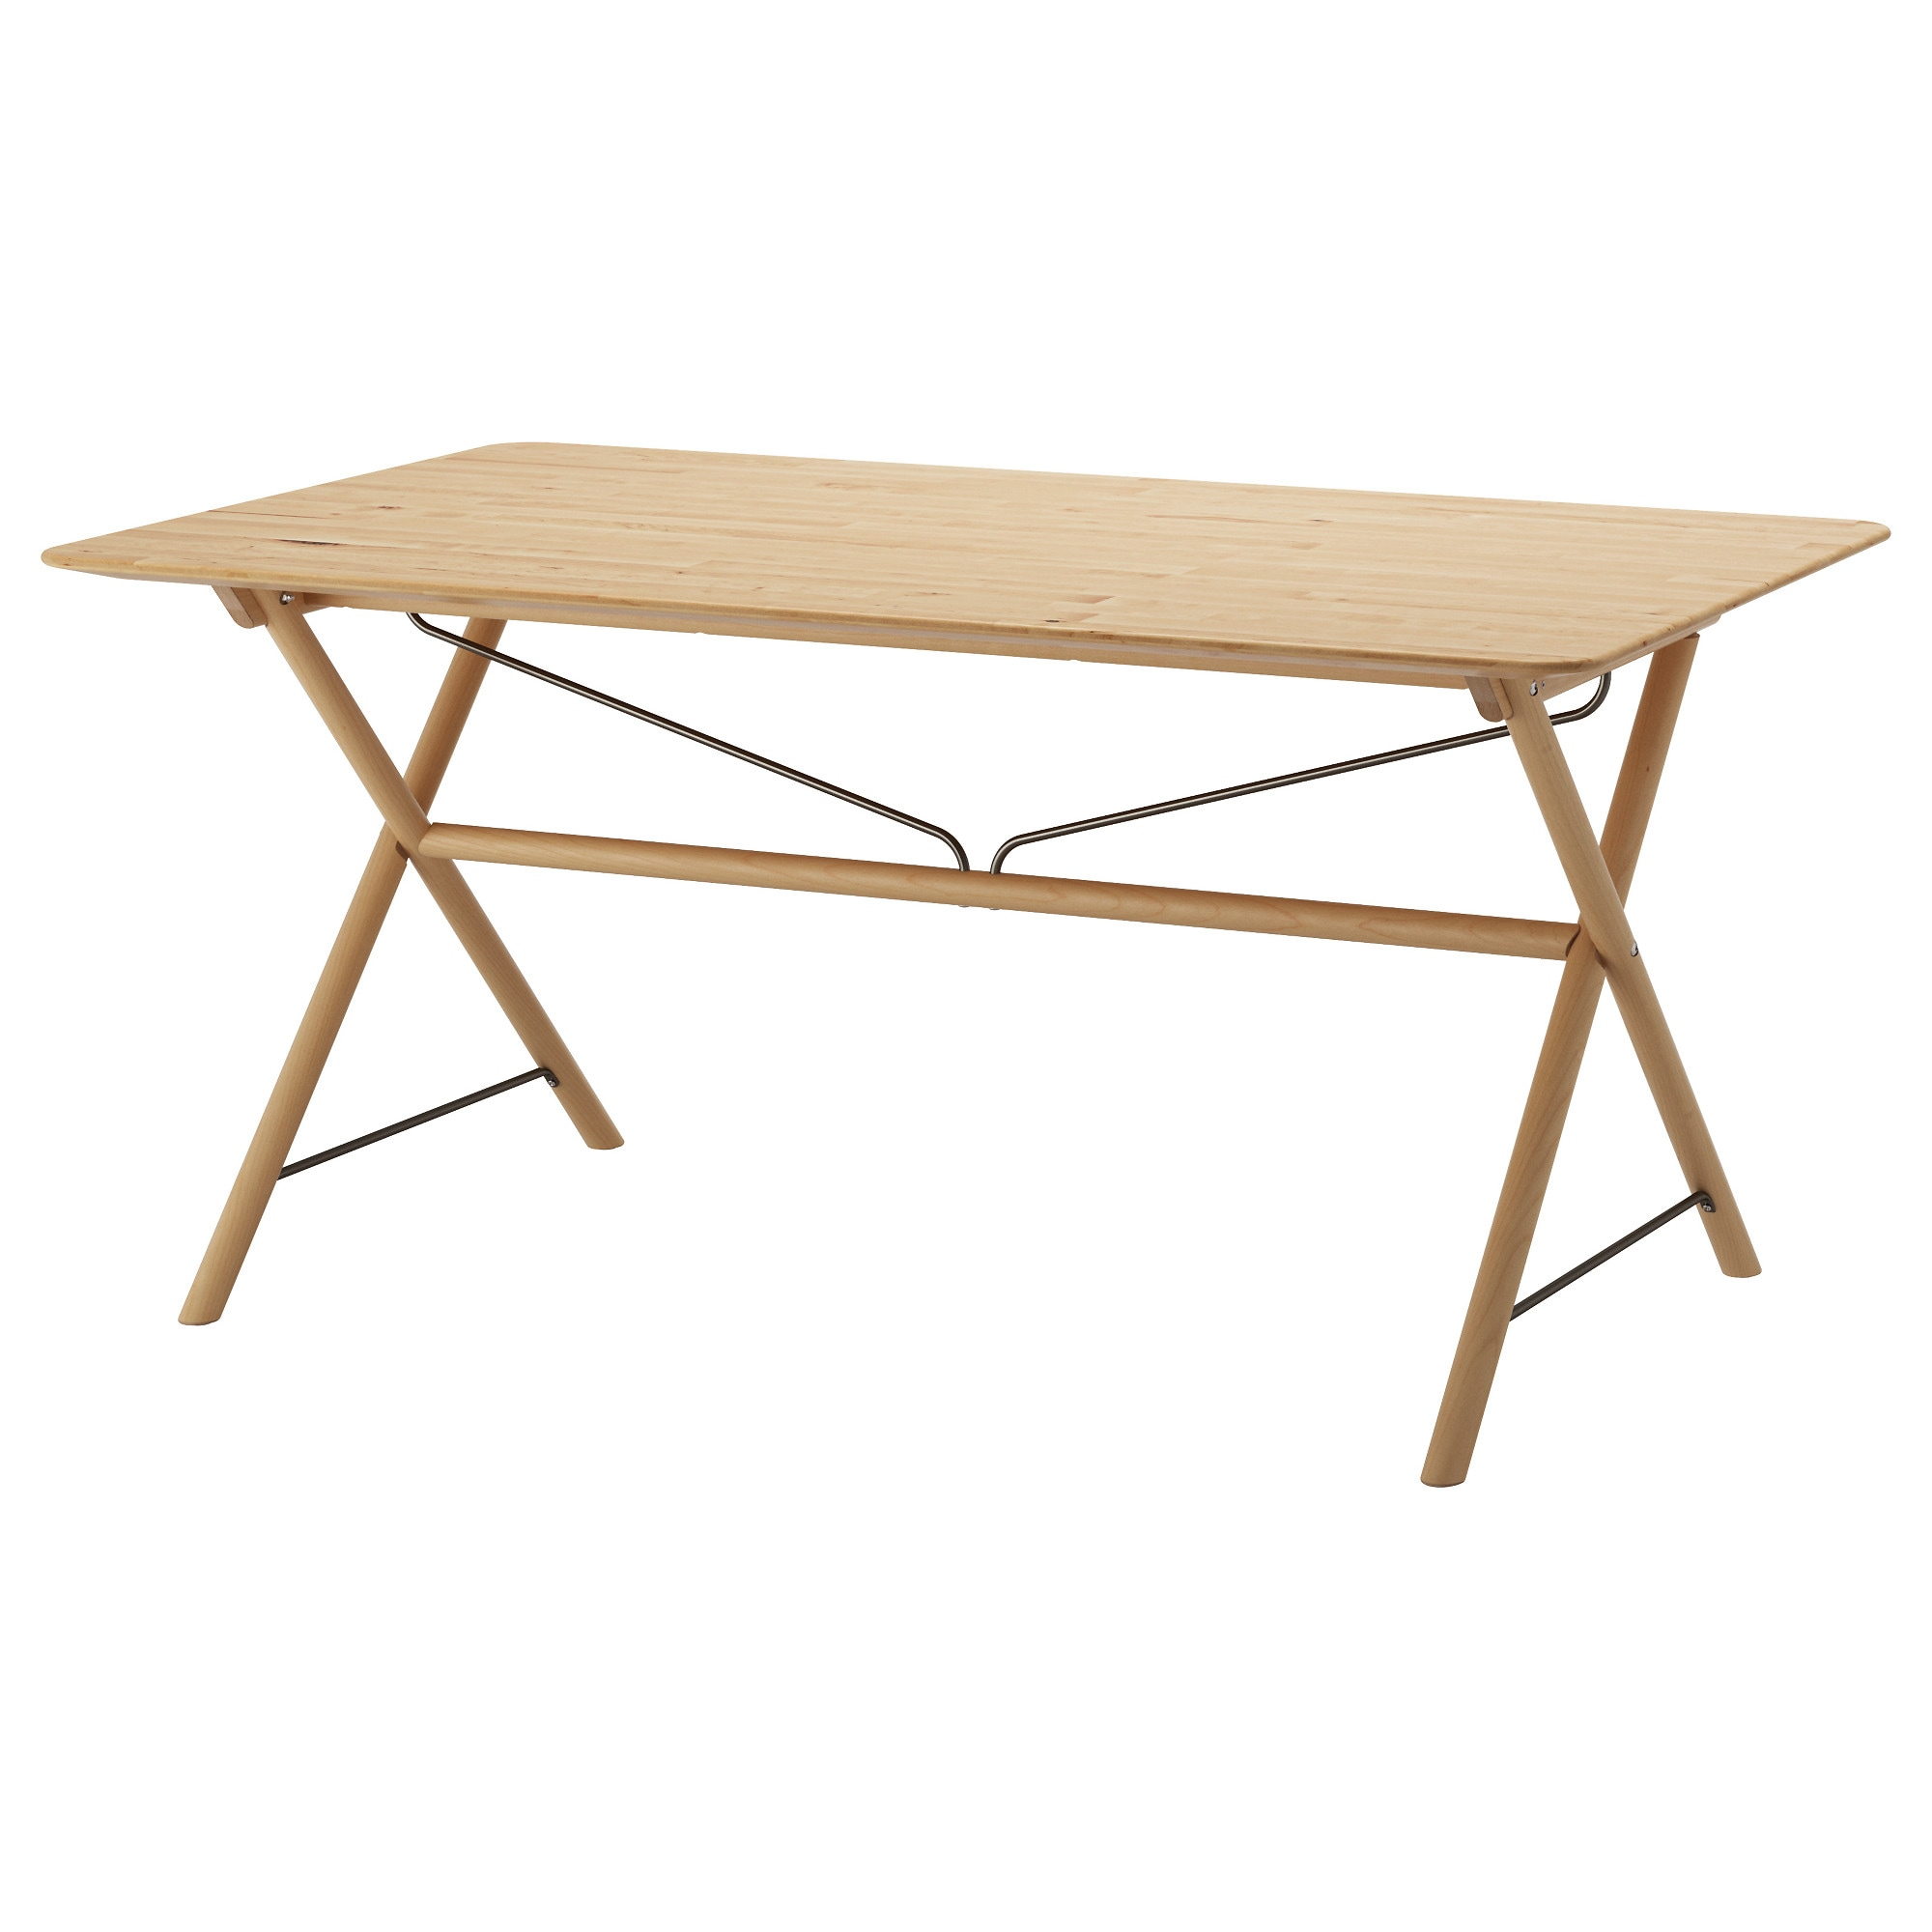 Table carree 8 personnes ikea 28 images table salle a for Table salle a manger carree 12 personnes